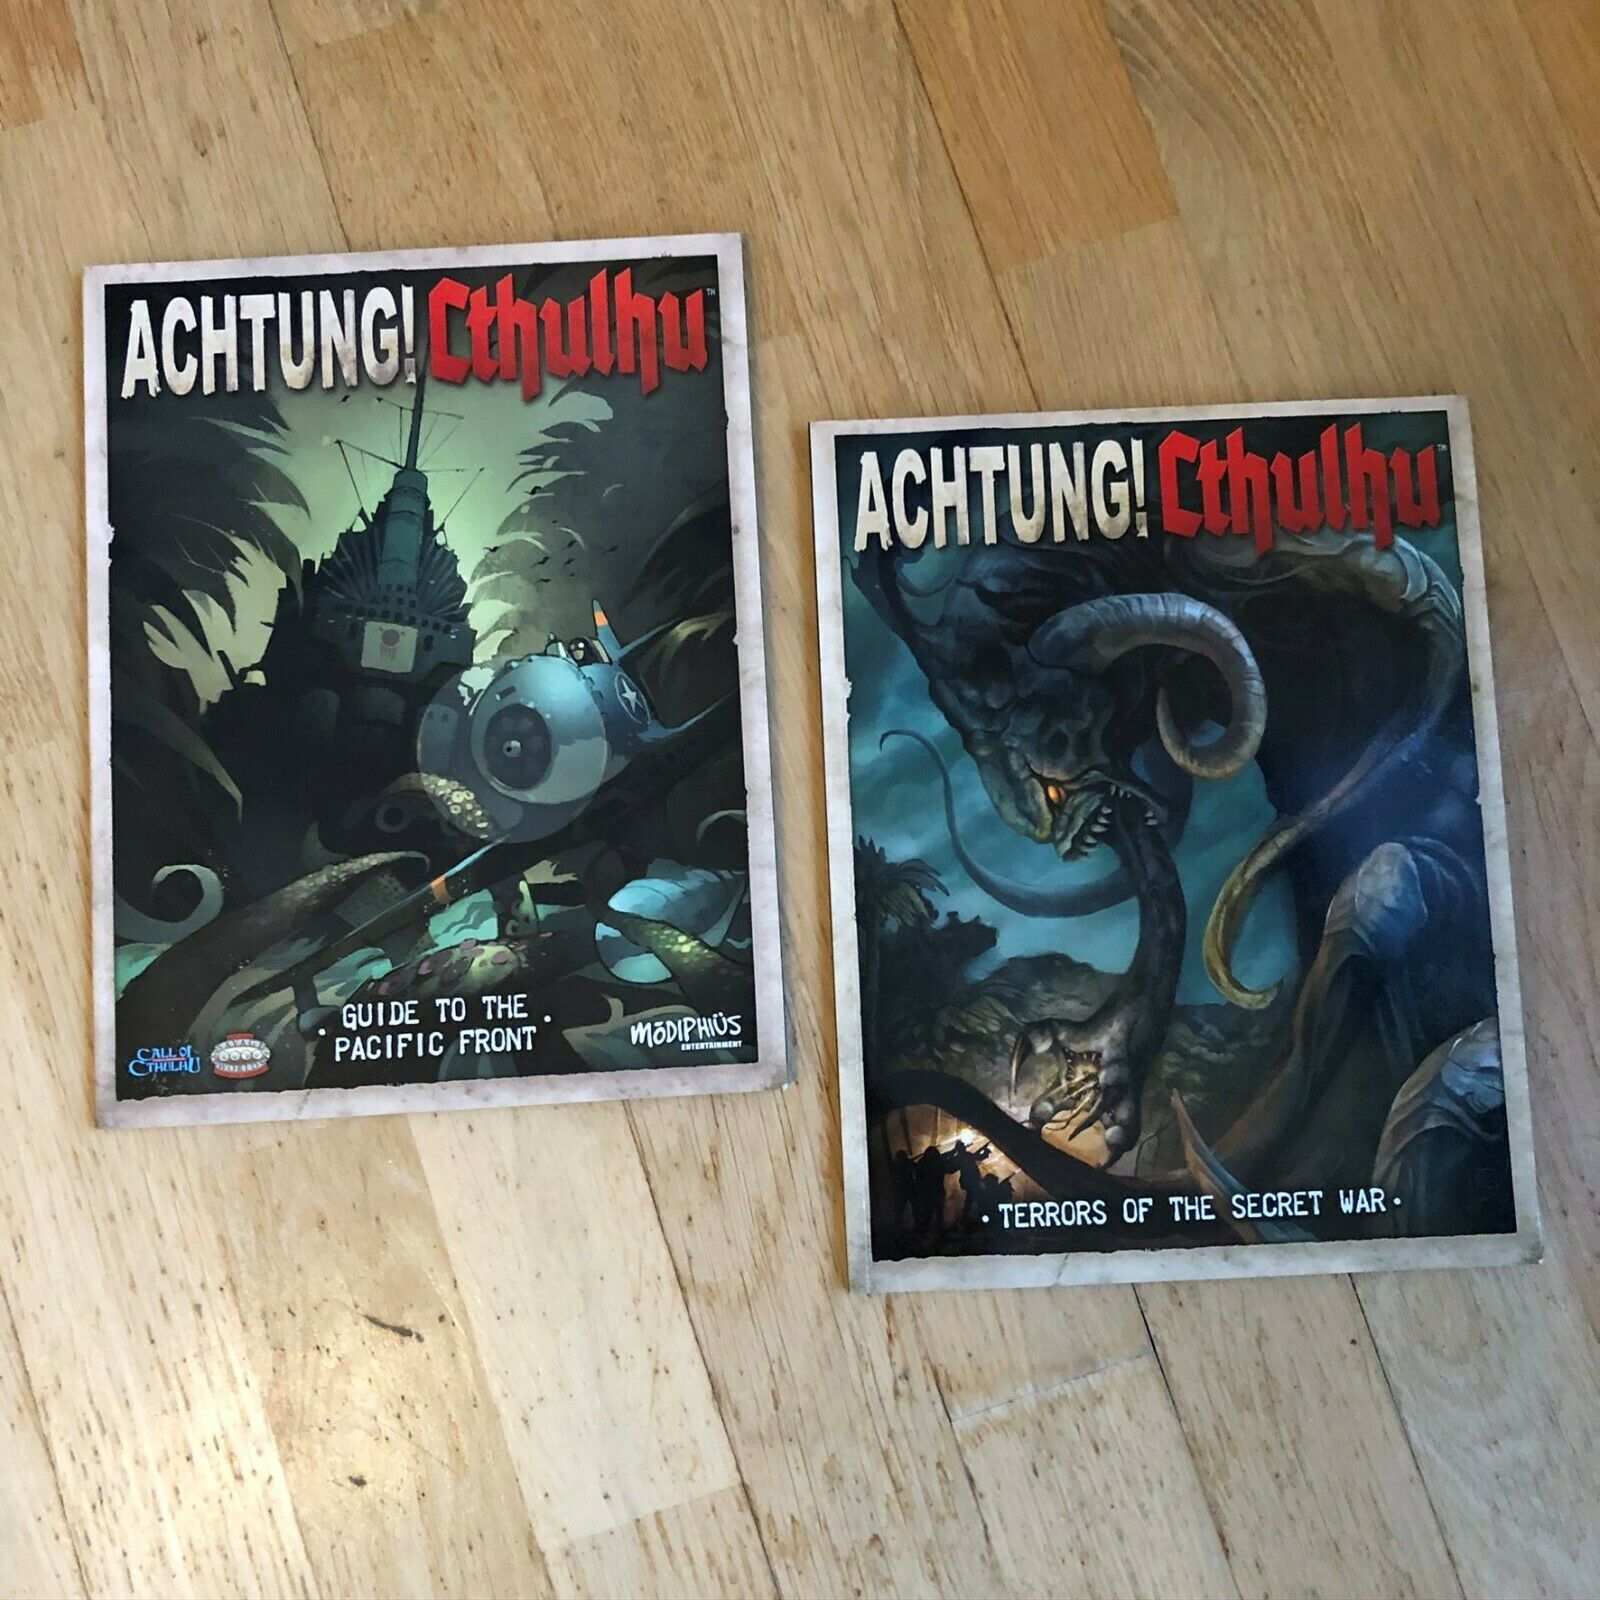 Modiphius TERRORS OF THE SECRET WAR +PACIFIC GUIDE Achtung Cthulhu FREE SHIPPING